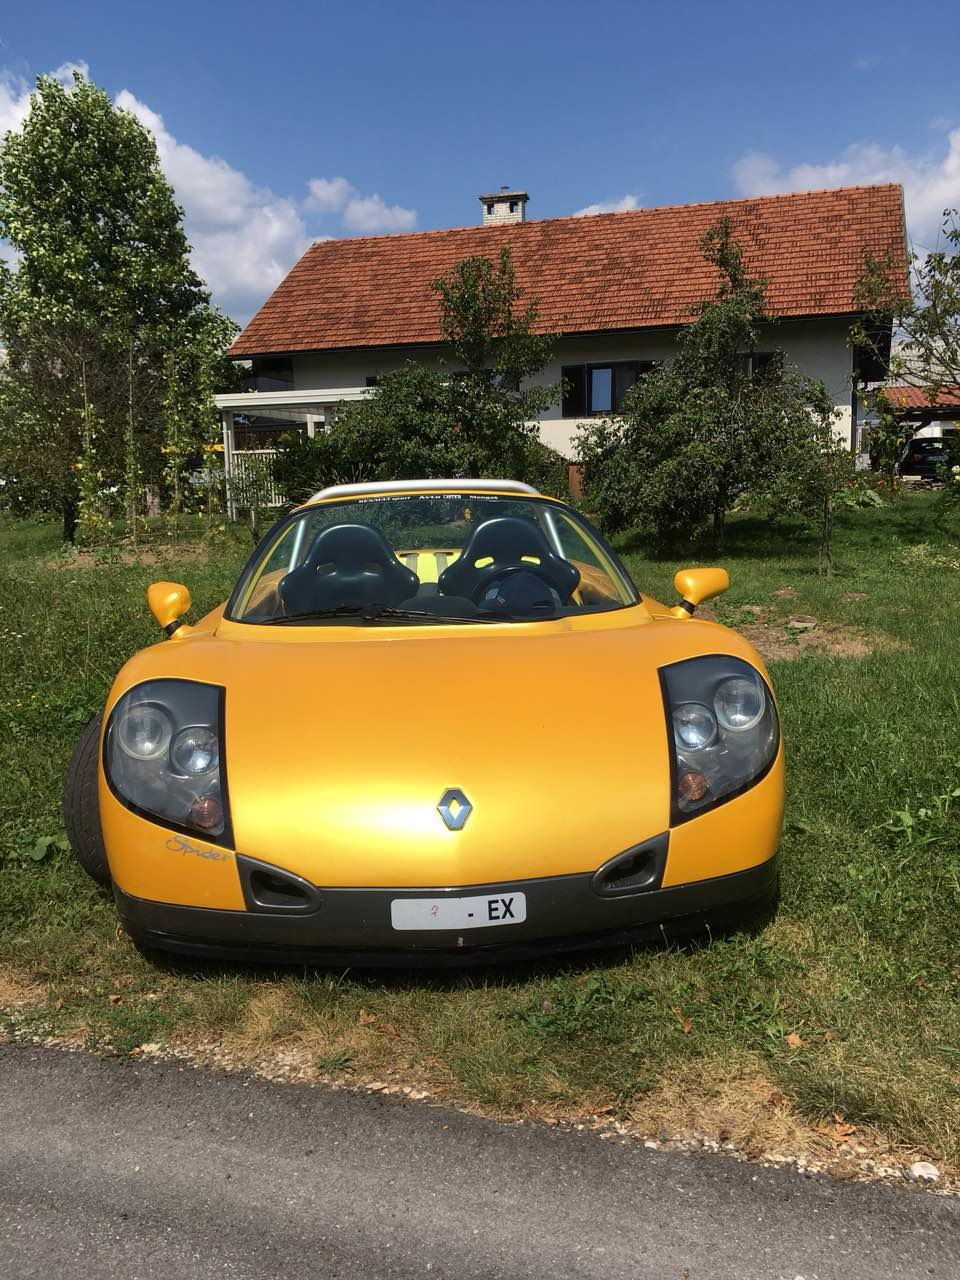 2006 Renault Sport spider For Sale (picture 1 of 4)